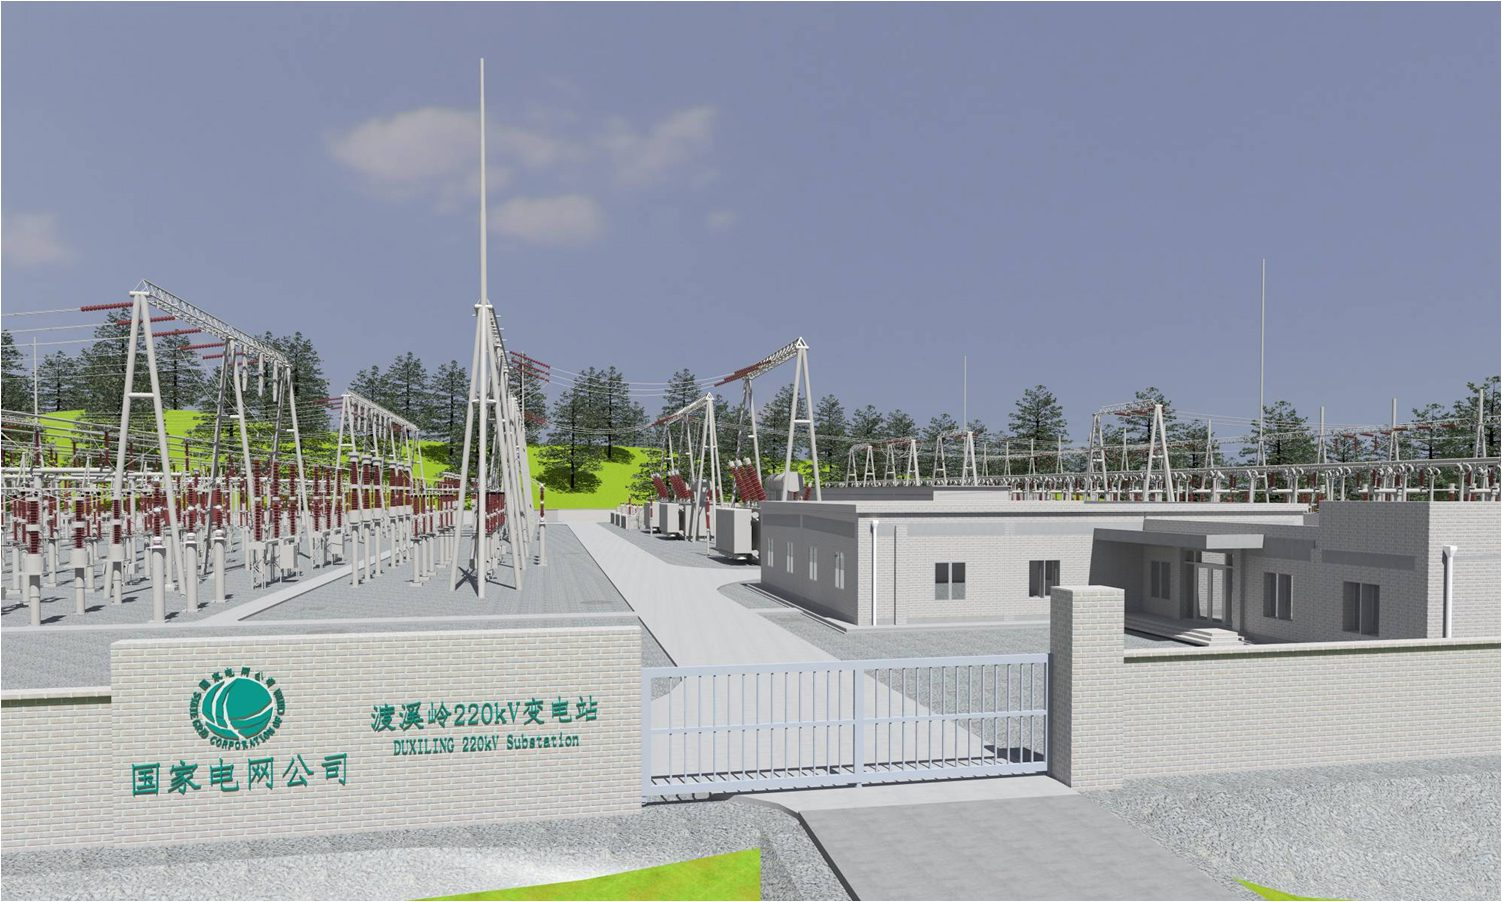 Jiangxi Electric - Duxiling220kV Main